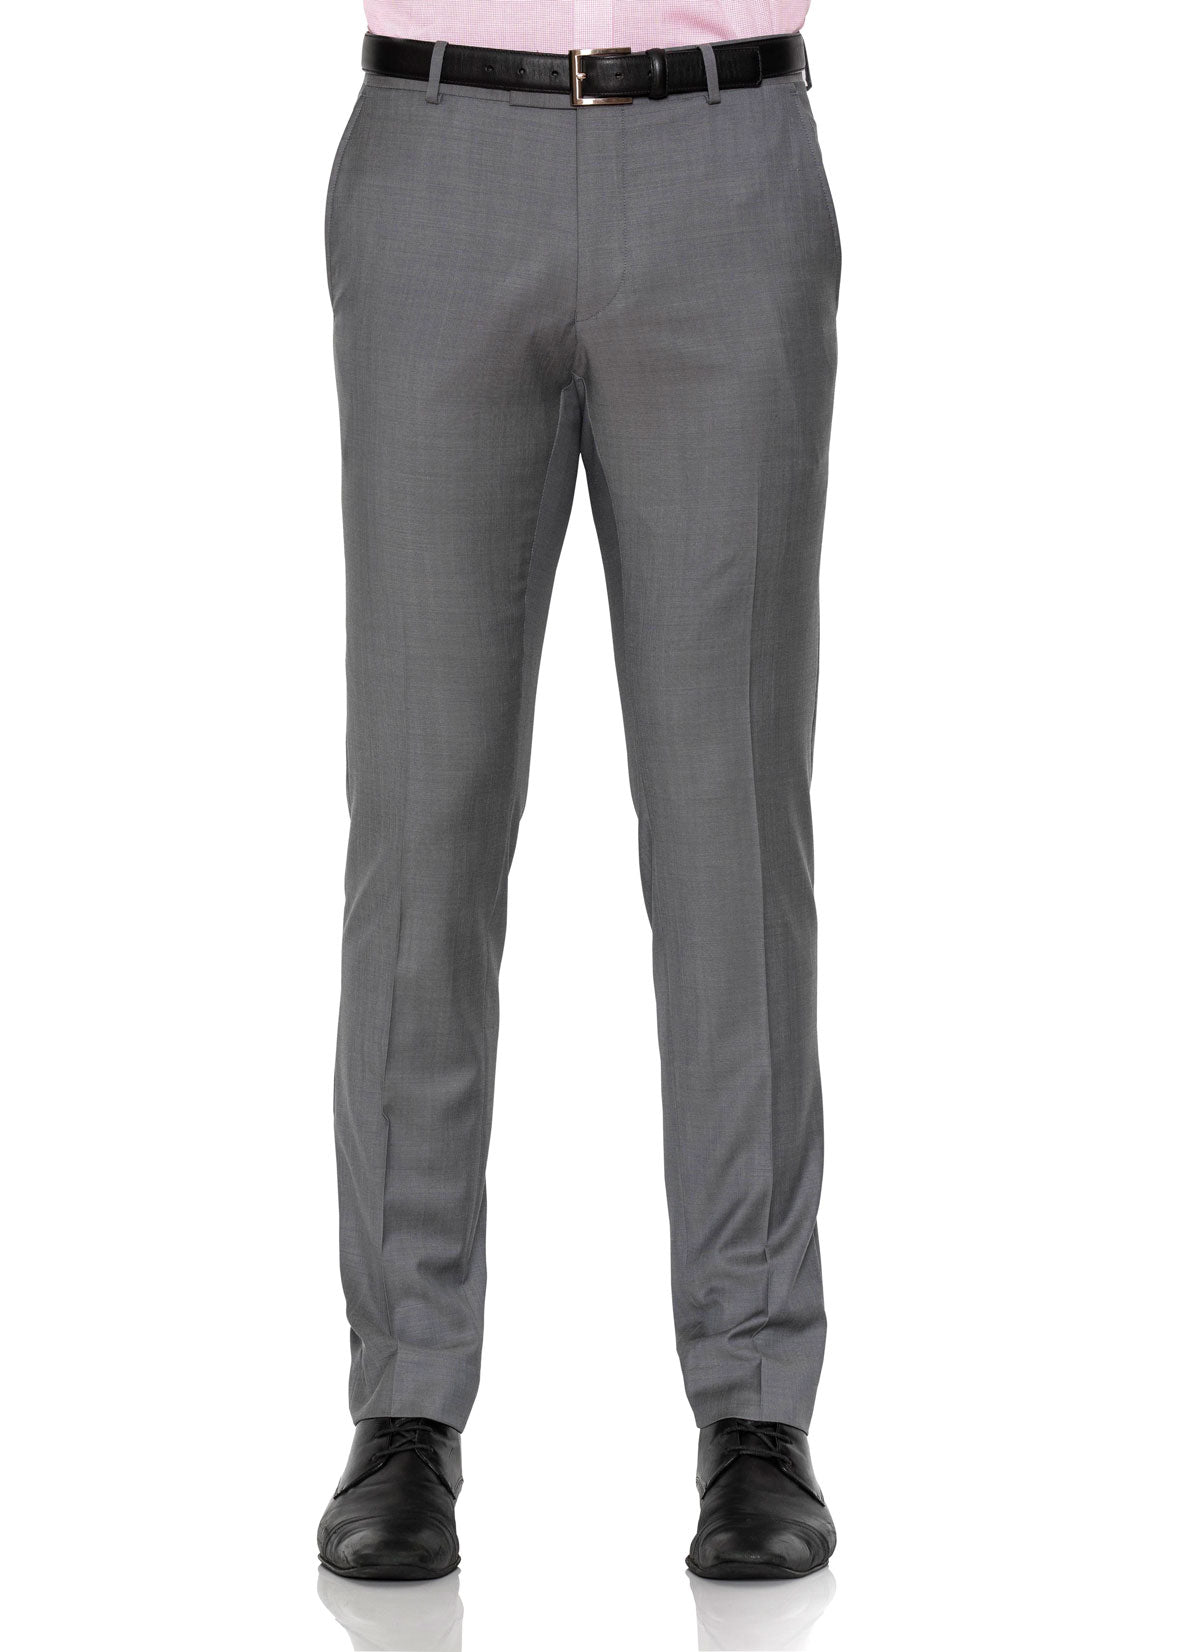 Razor Trouser in Grey